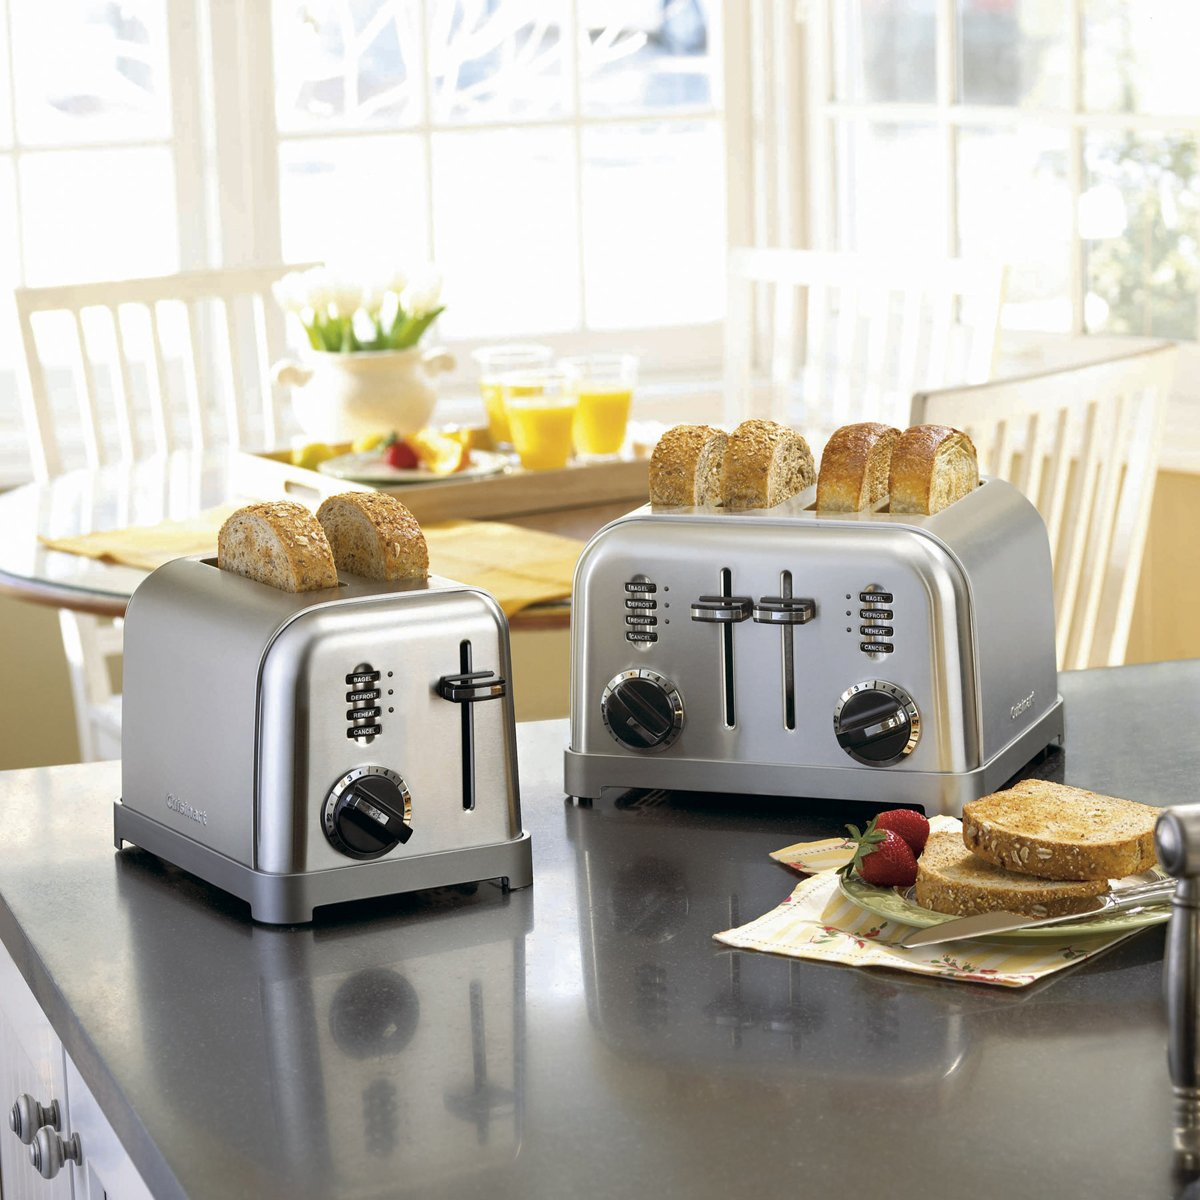 Cuisinart 4 Slice Toaster Black Friday Deal 2019